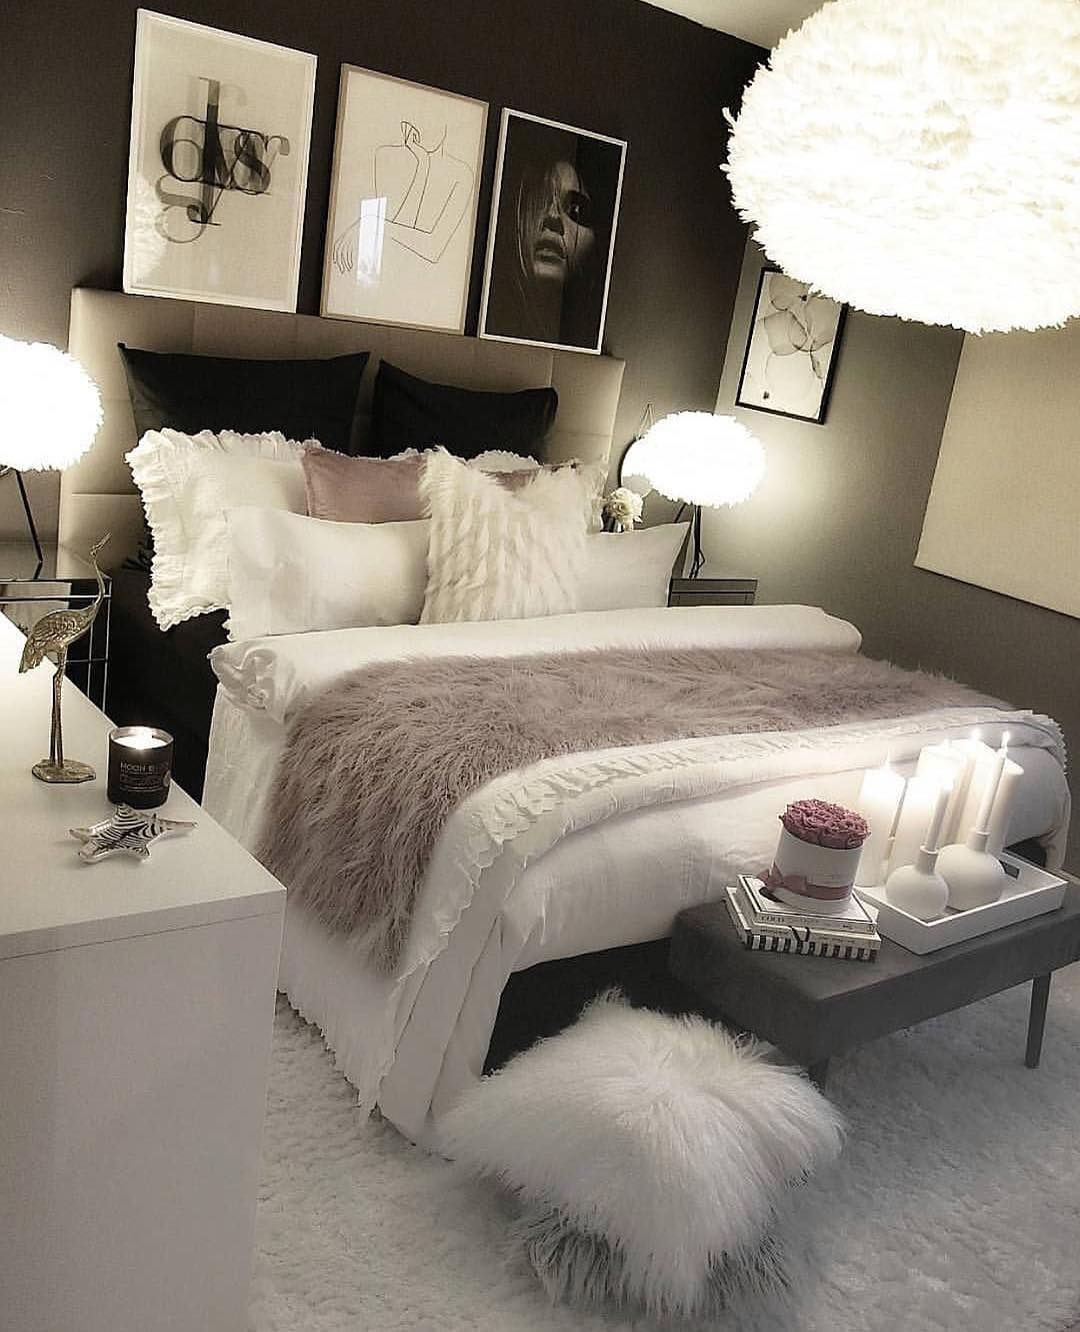 Best Female Content On Instagram Cozy Night Leave Your Comment Follow Female Styl In 2020 Small Room Bedroom Luxurious Bedrooms Stylish Bedroom Design